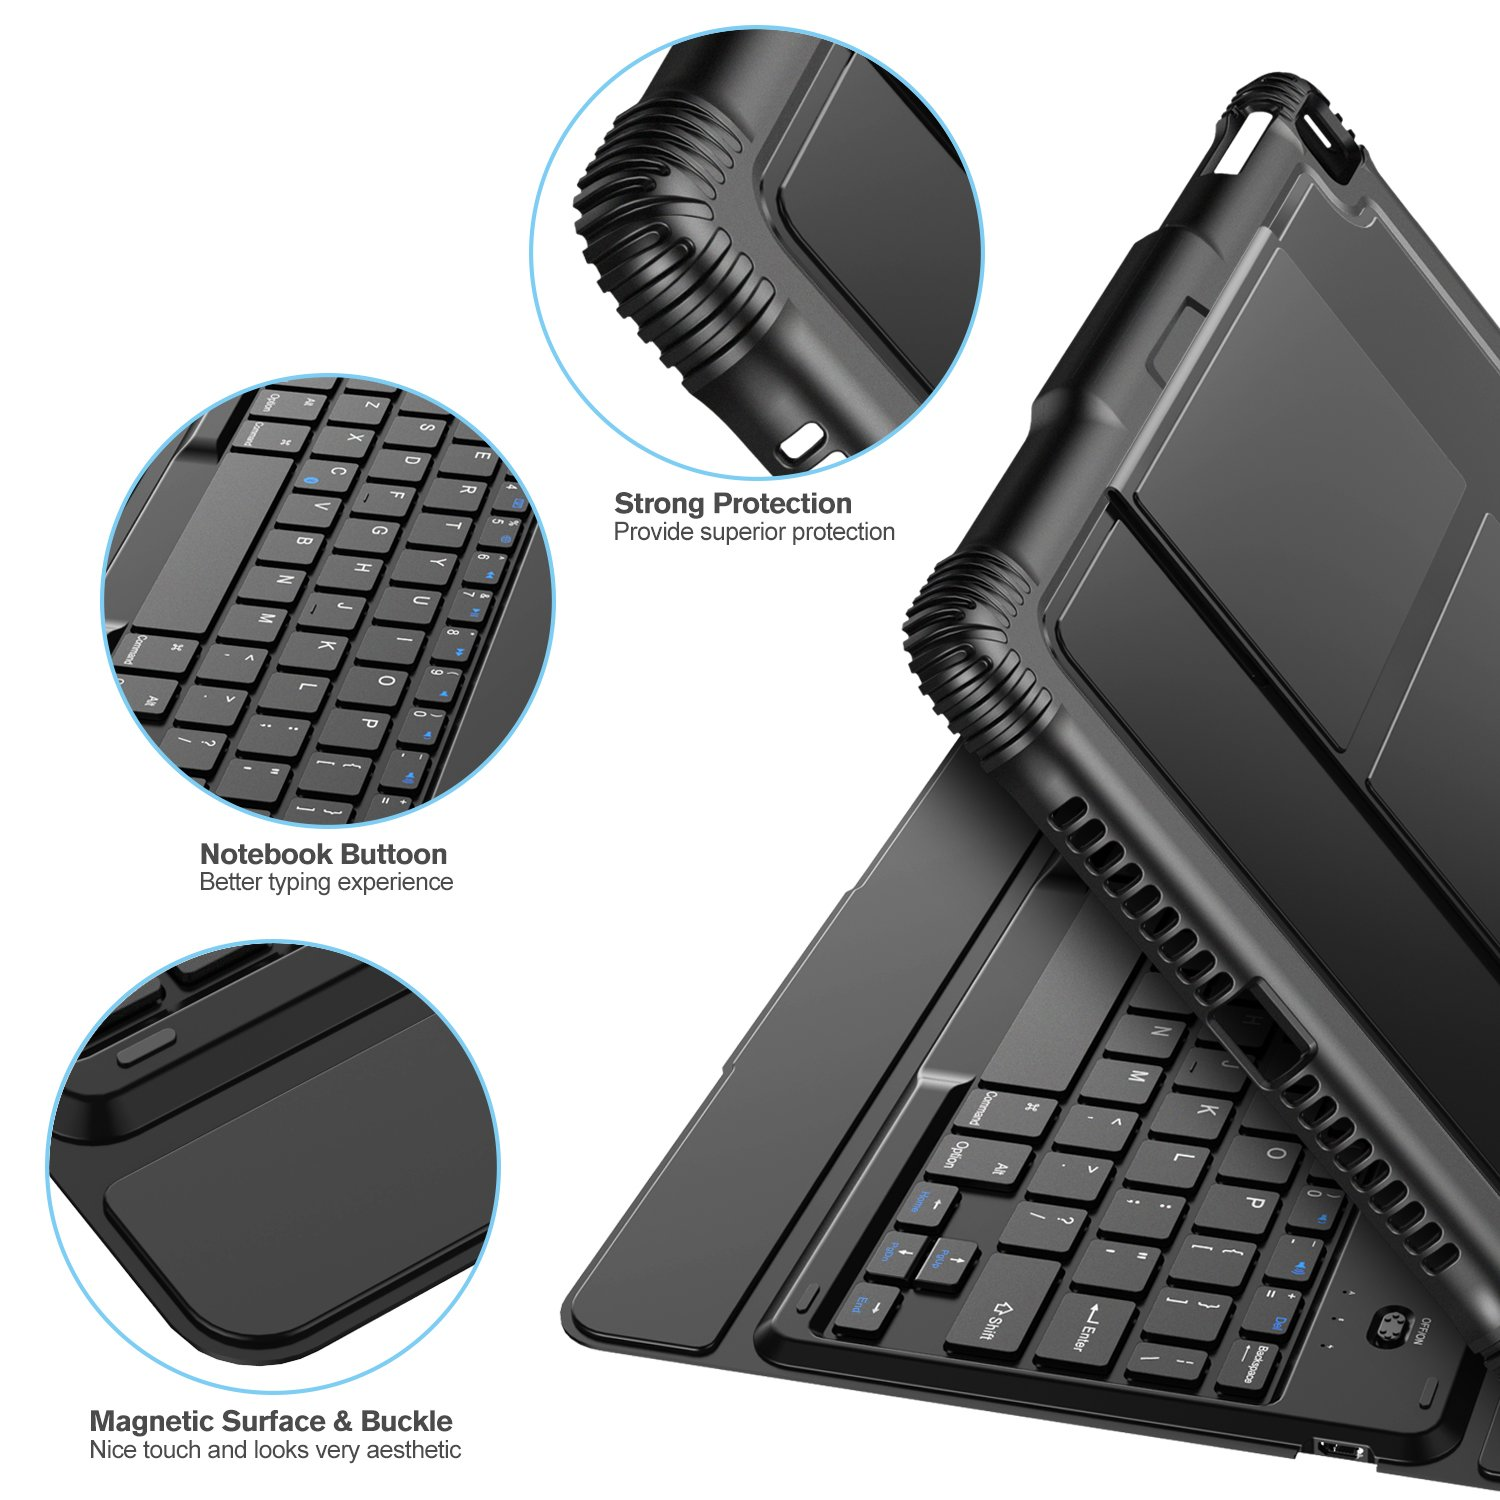 Nulaxy iPad Keyboard Case Compatible with iPad Air1/2, iPad Pro 9.7, iPad 9.7 2017/2018 - Detachable Bluetooth Keyboard/Built-in Magnetic Foldable Solid Stand with Auto Sleep/Wake - KM14 Black by Nulaxy (Image #6)